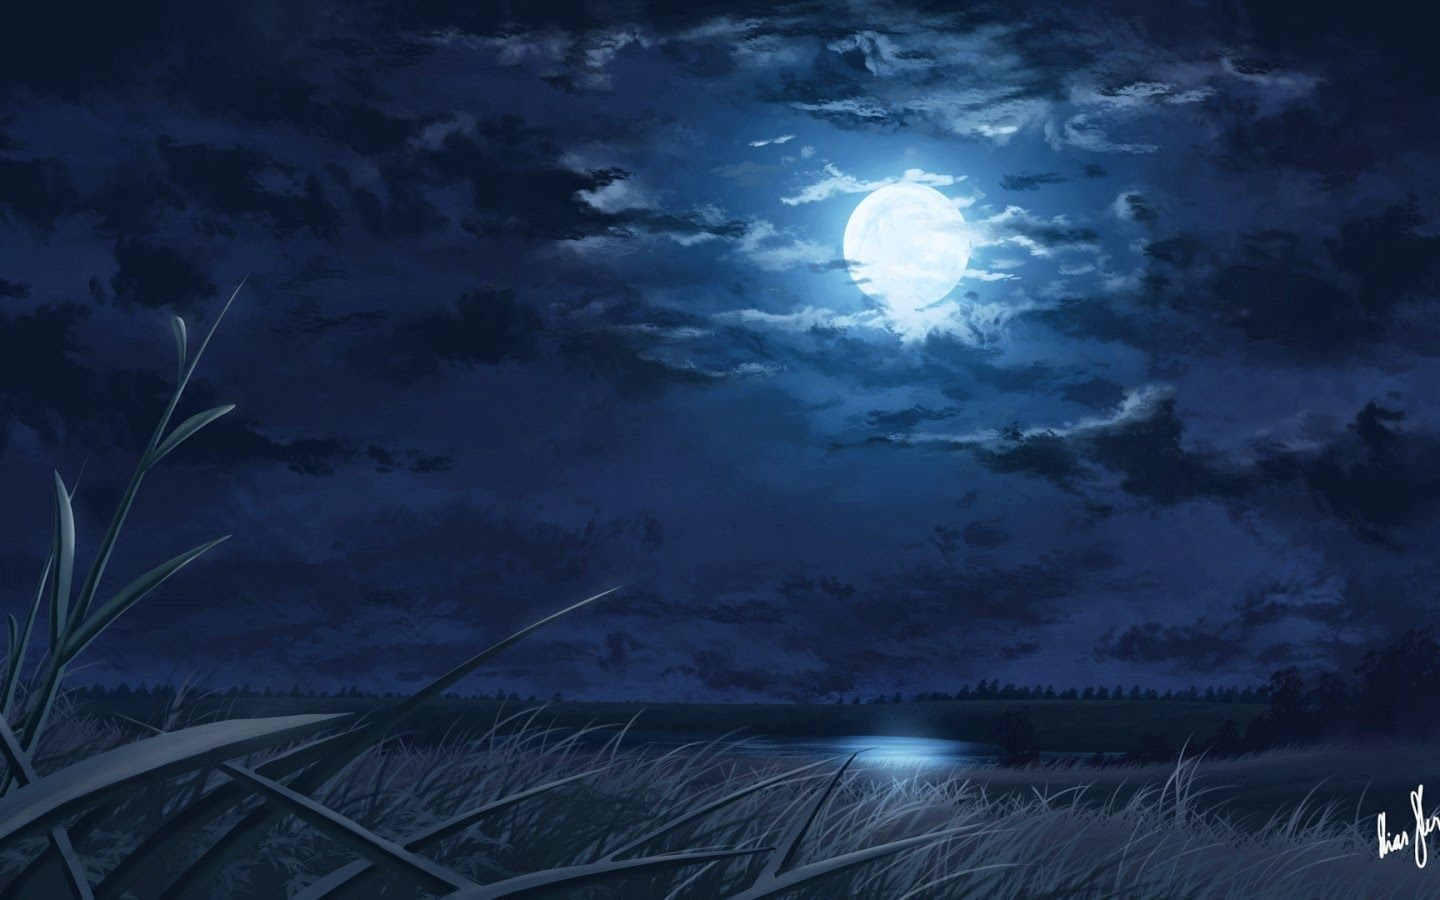 Moon Digital Drawings Night Art Image 1440x900 Jpg Moon Light And Stars Night Background With Trees Nature Art Anime Scenery Wallpaper Moon Painting Moon Sea